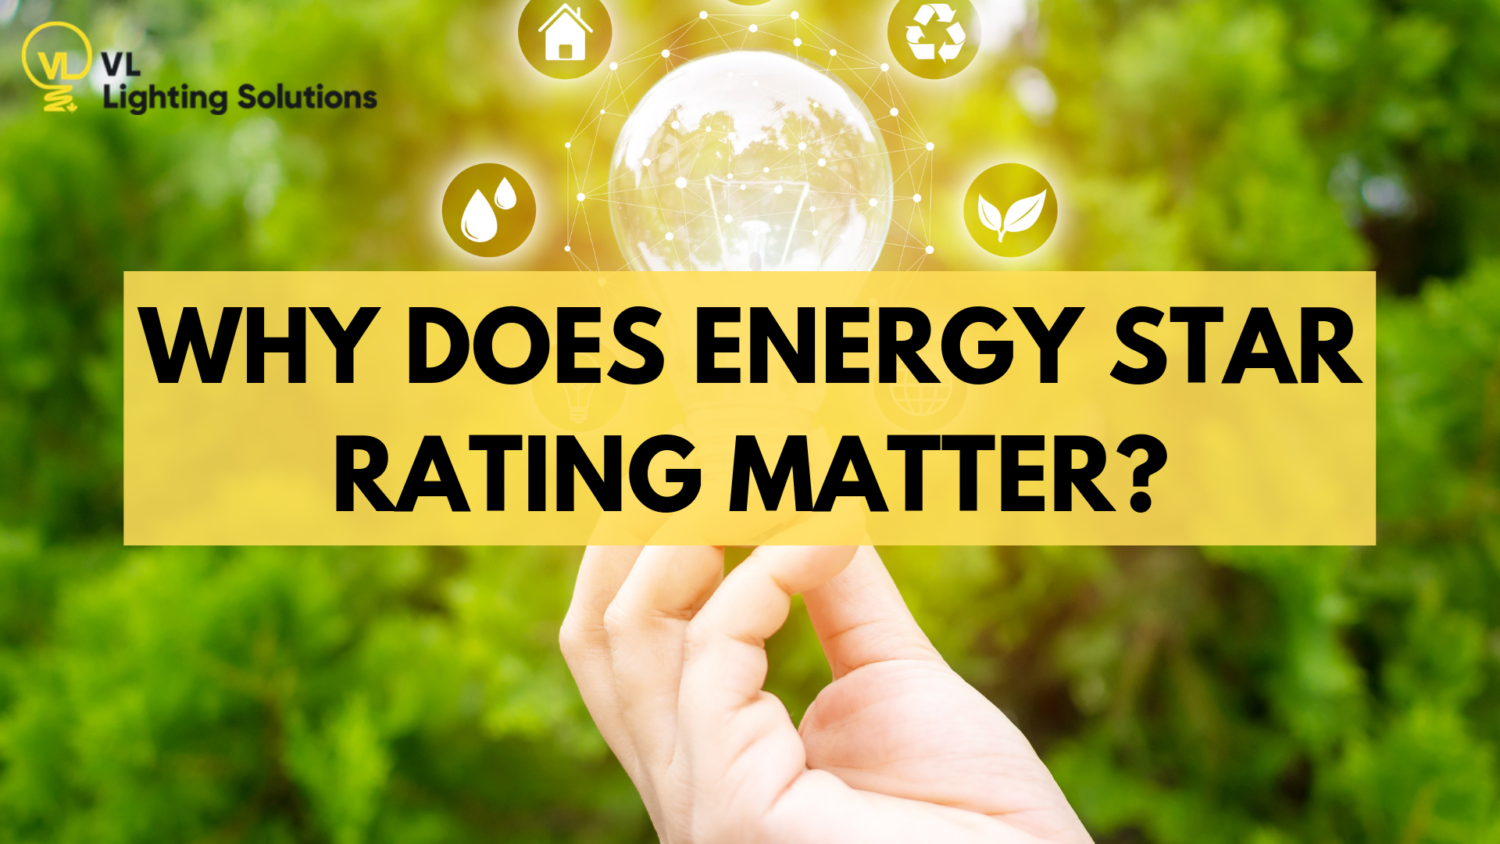 Why Does ENERGY STAR Rating Matter?